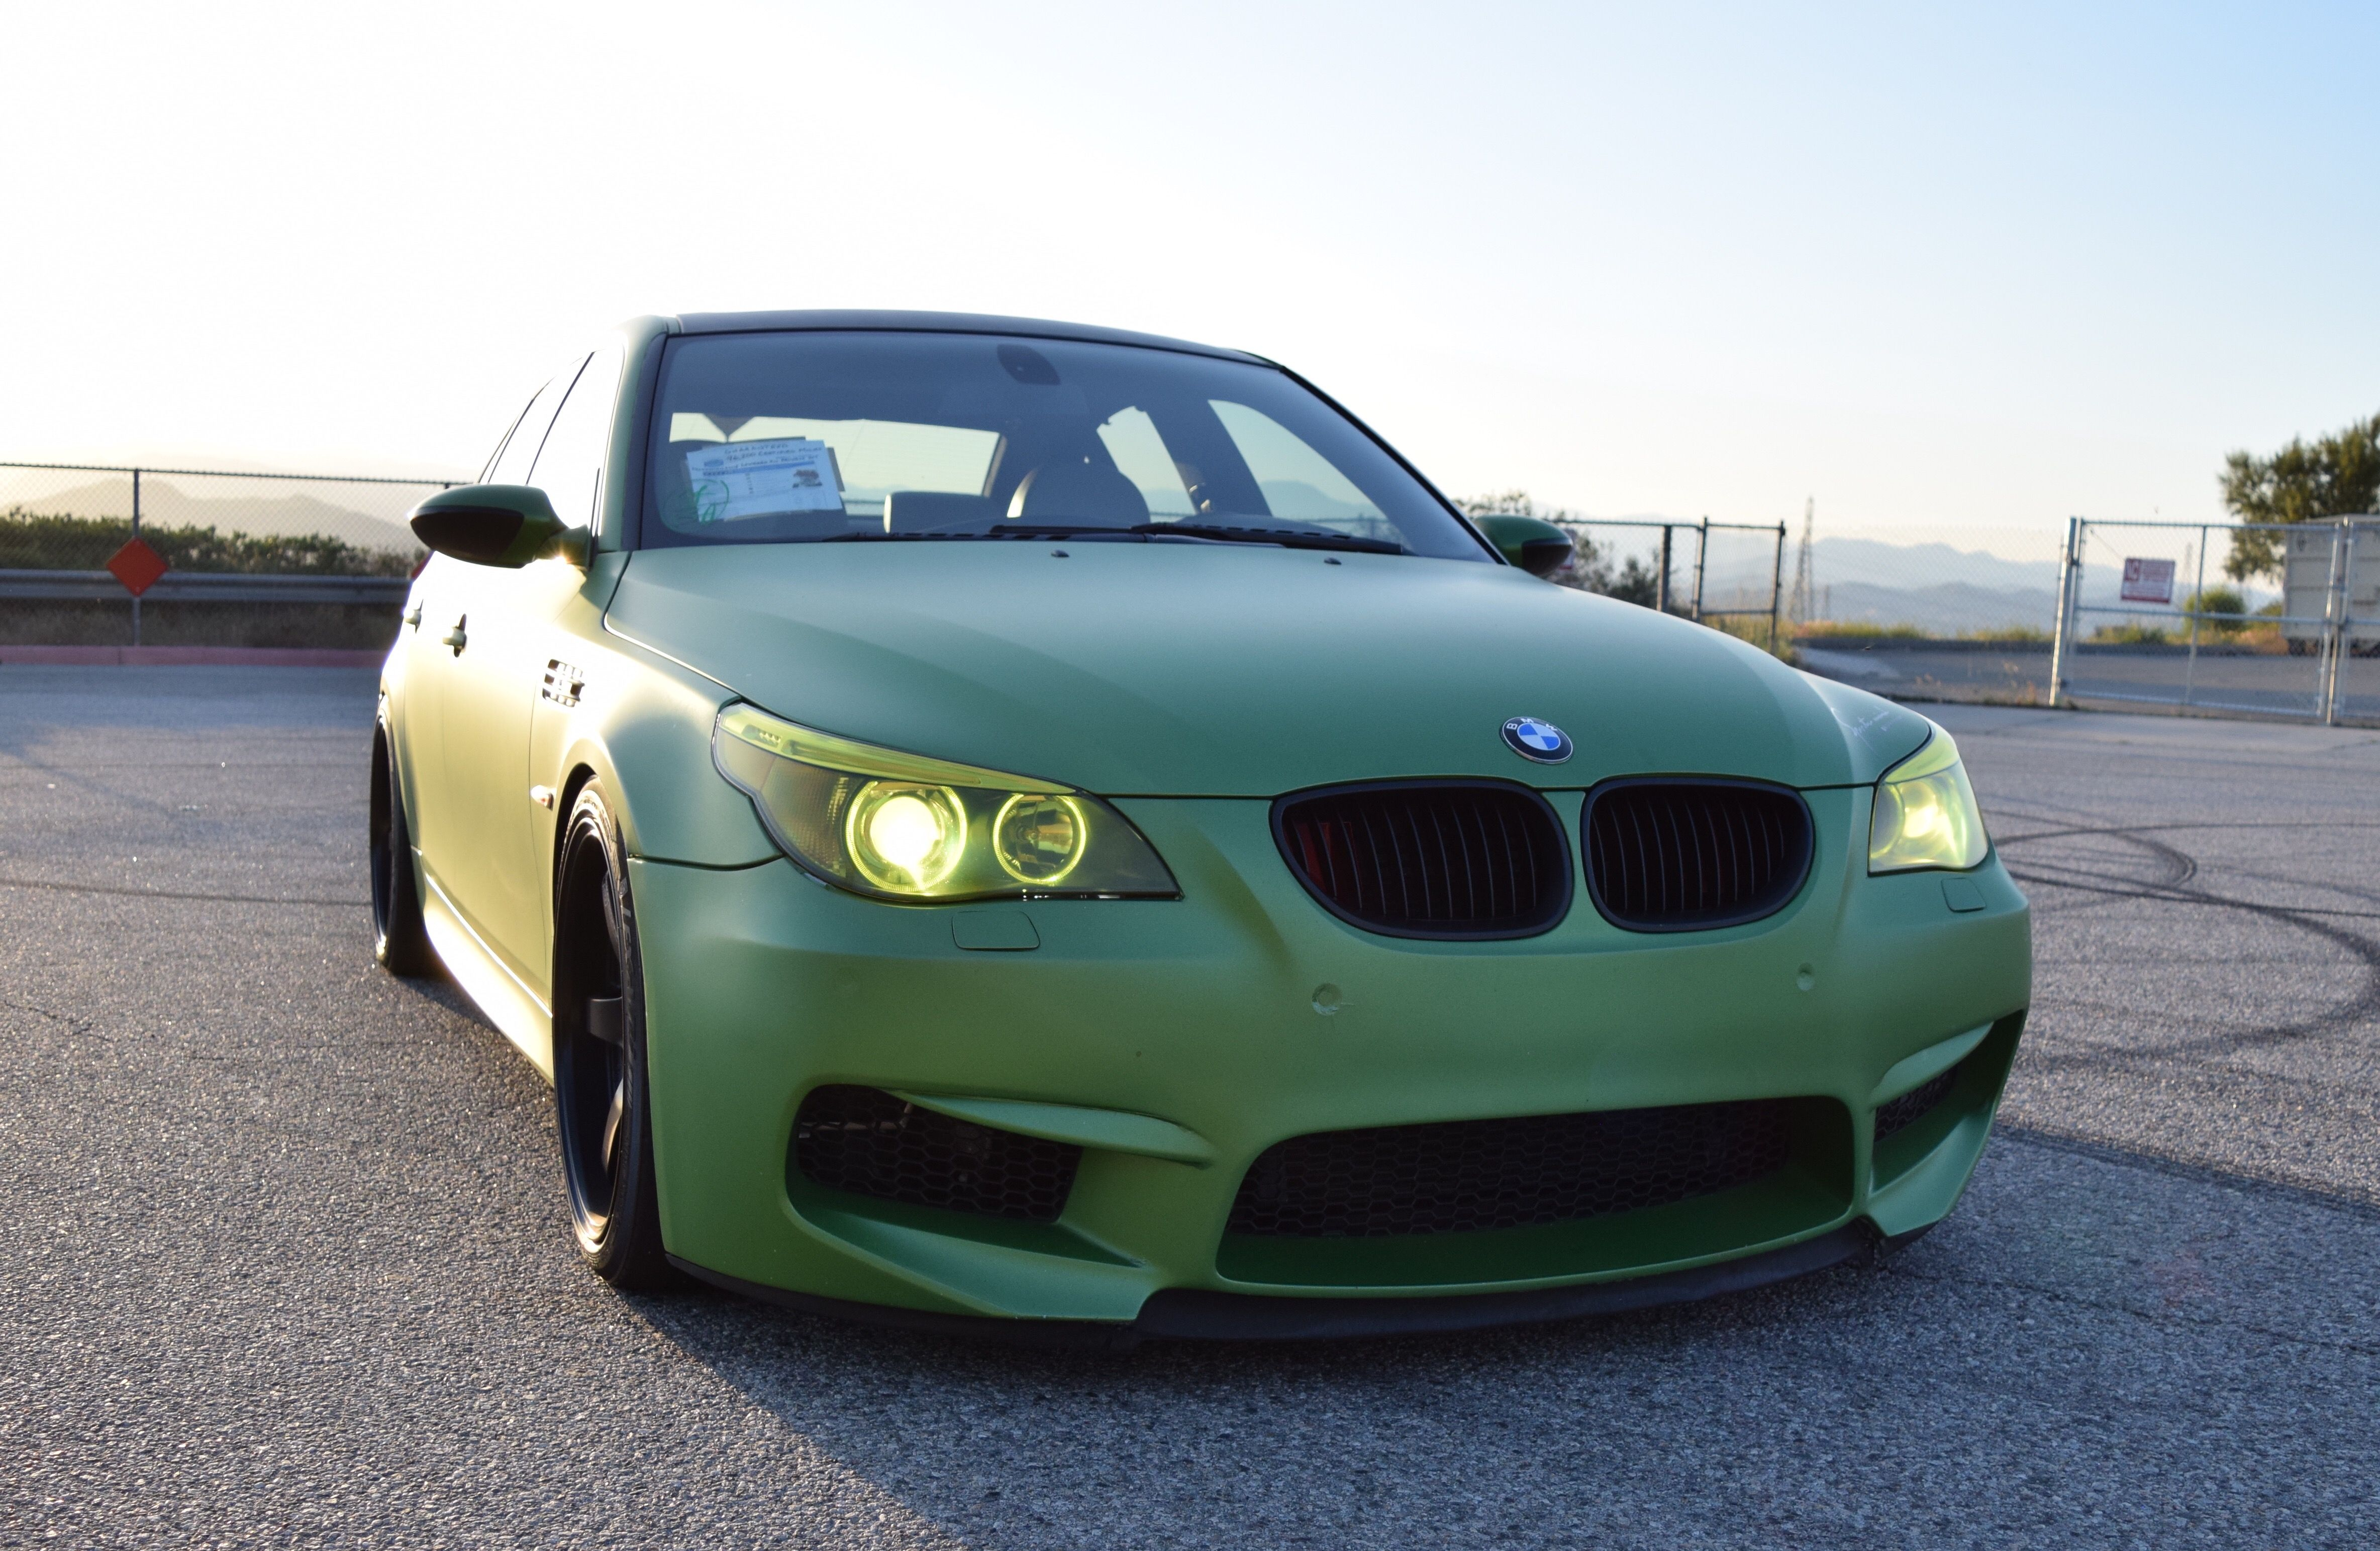 E60 Bmw M5 With 19 Inch Advan Wheels With Images Bmw Bmw M5